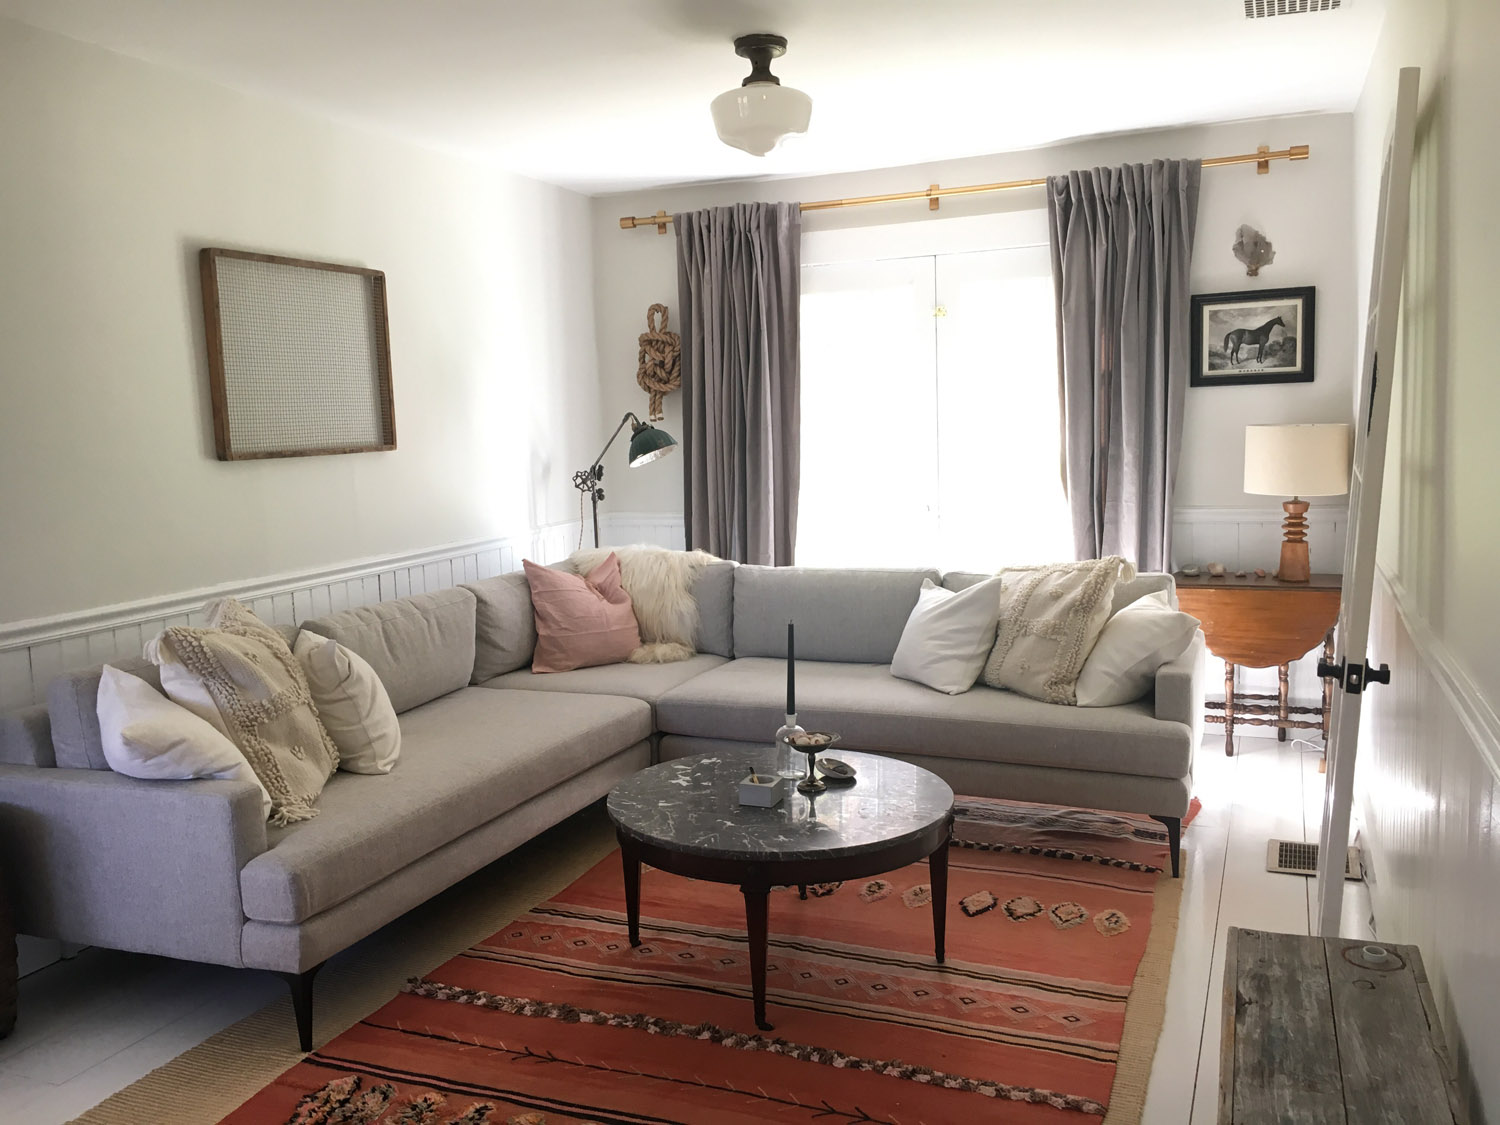 west elm living rooms home ceiling designs room on making your new livable and other dispatches from upstate ny renovation